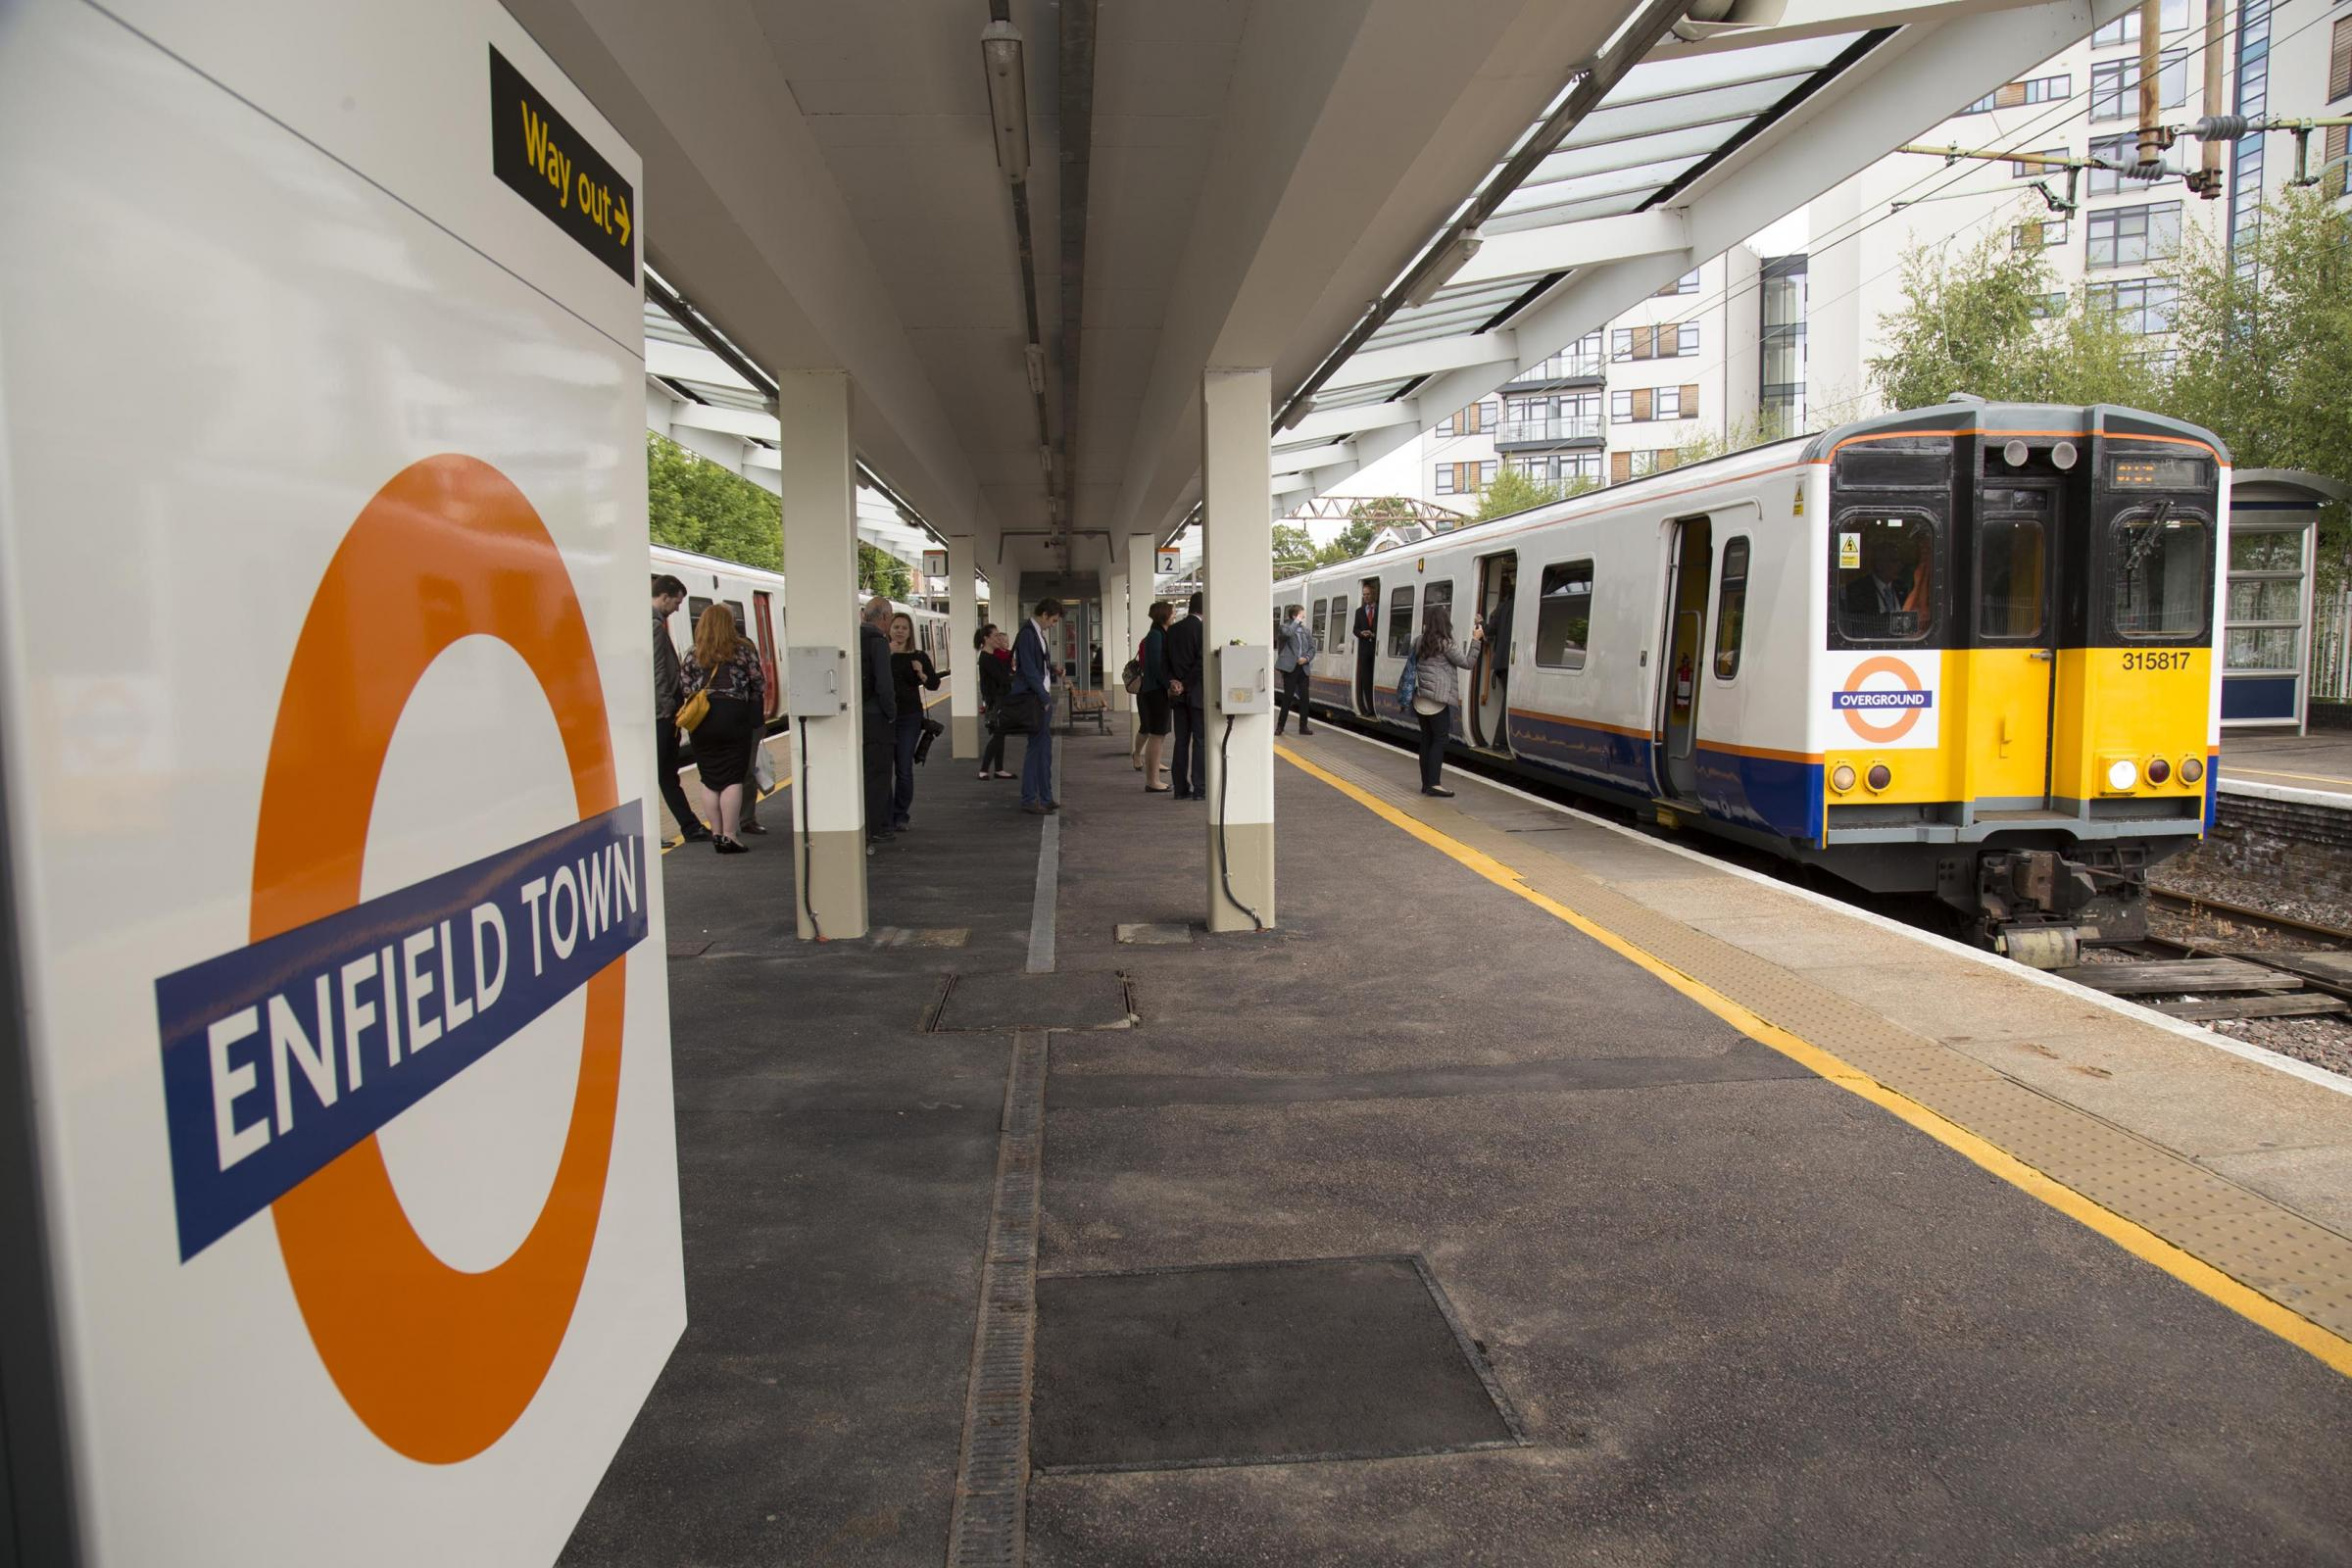 Enfield Town Overground of The Enfield Town Line